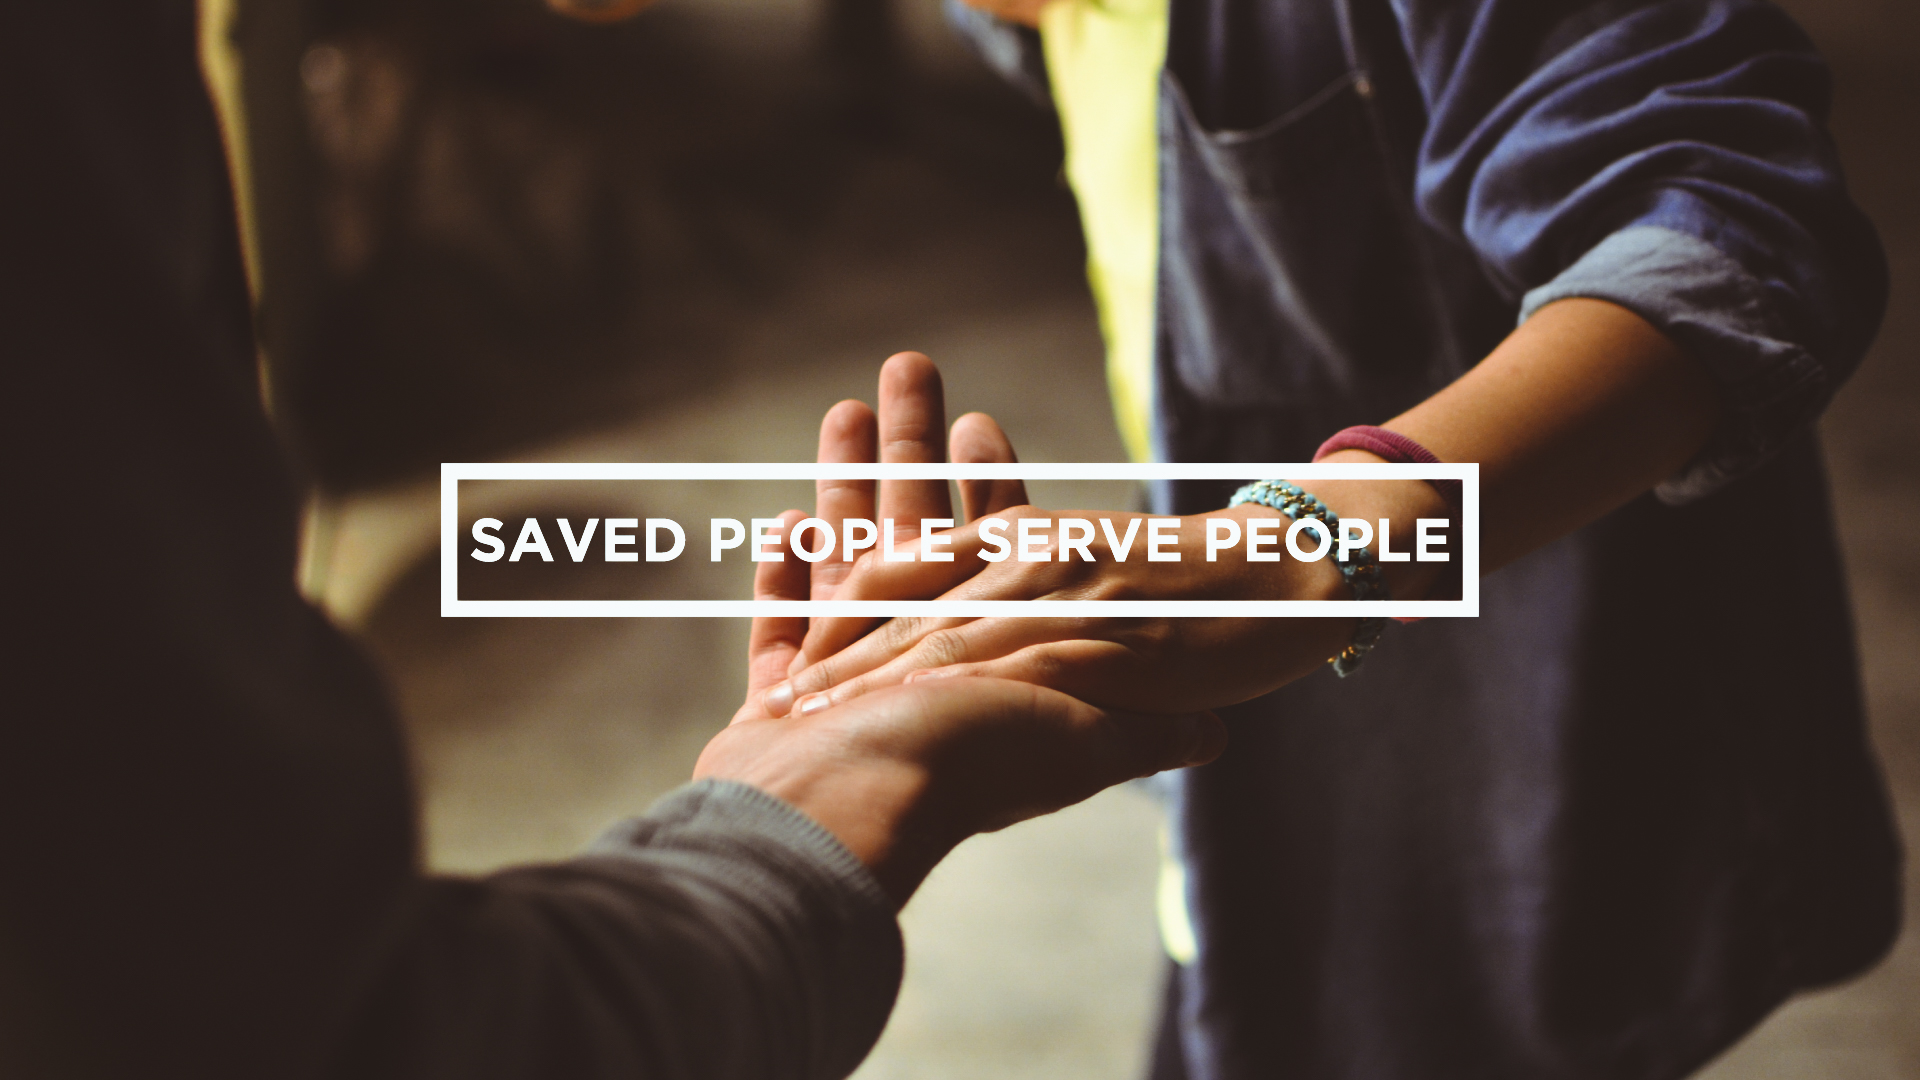 05-SAVED PEOPLE SERVE PEOPLE (1).JPG